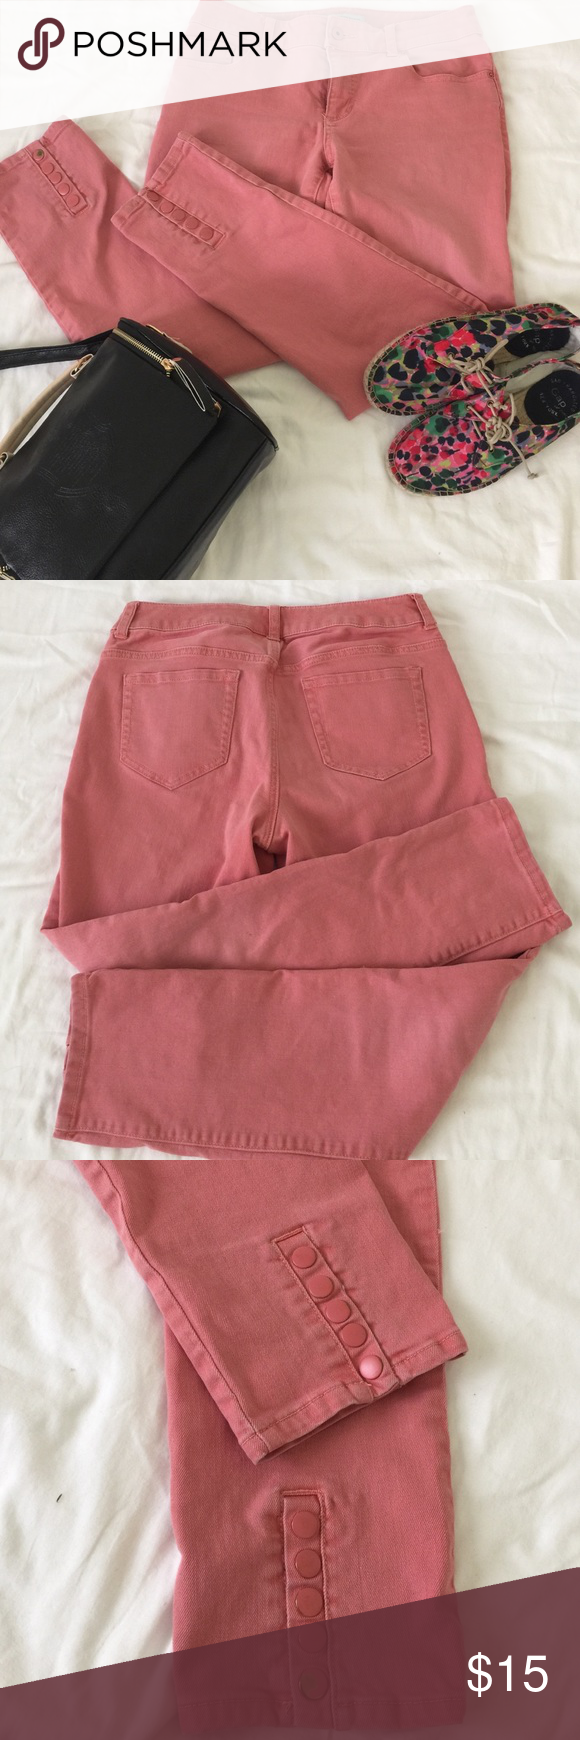 Great fitting rose colored jeans w/snap closure Snaps can be undone to make putting on easier! some color on the snap has chipped off and 1 tiny dot stain as pictured. Cotton w/2% spandex for a great fit 26 inseam on this cropped pant looks great w/heals! Chicos size 0 fits 6 Chico's Pants Ankle & Cropped